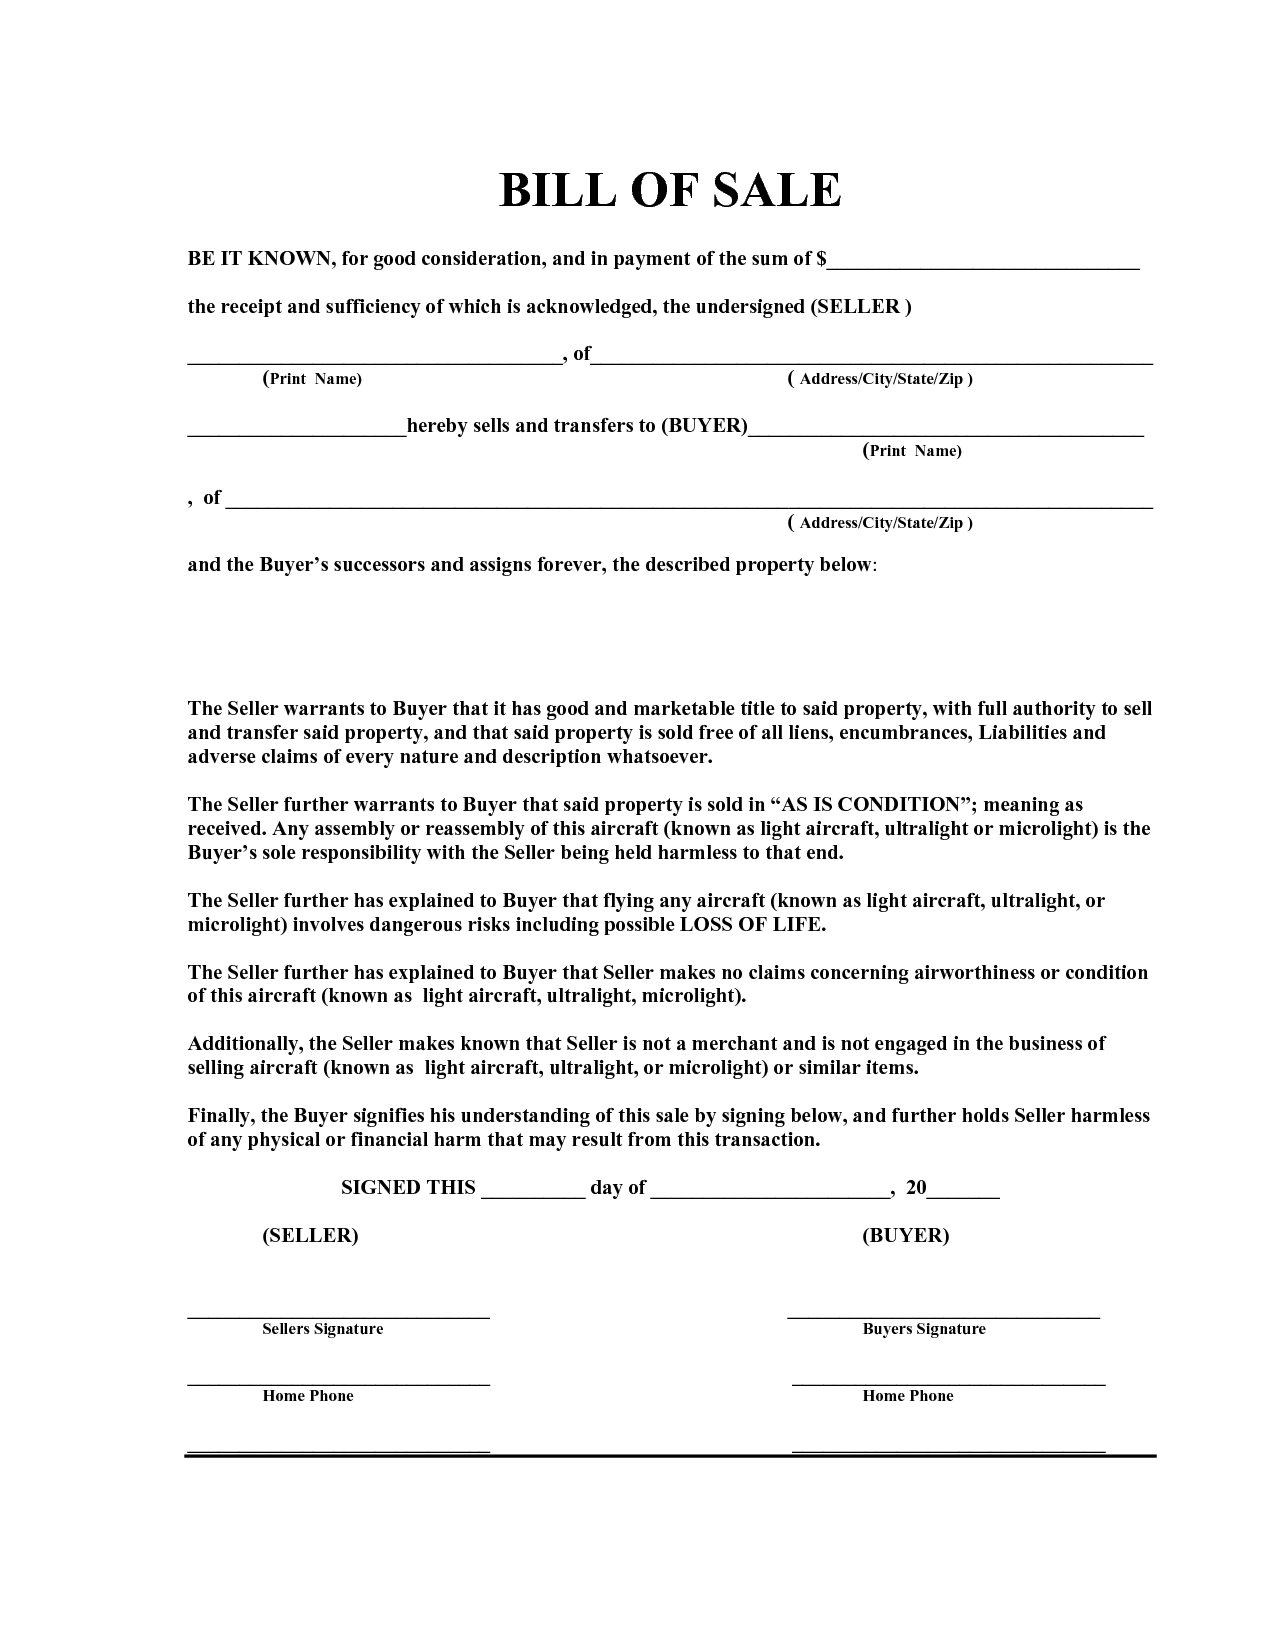 bill of sale template pdf Free Bill of Sale Template - PDF by Marymenti - as-is bill of sale ...